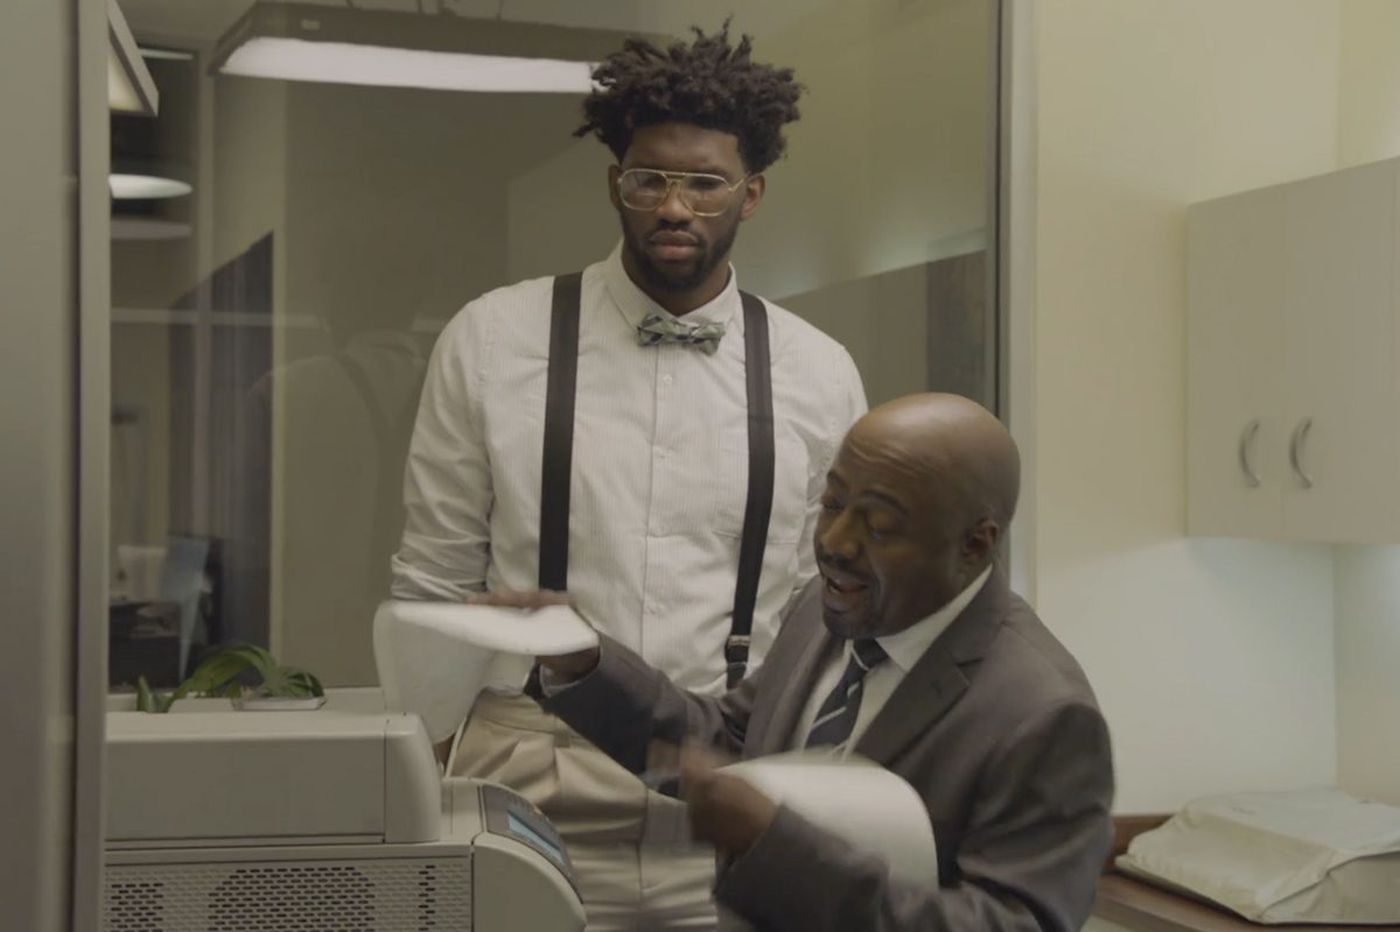 Joel Embiid makes his comedic debut on Verizon's go90 streaming service